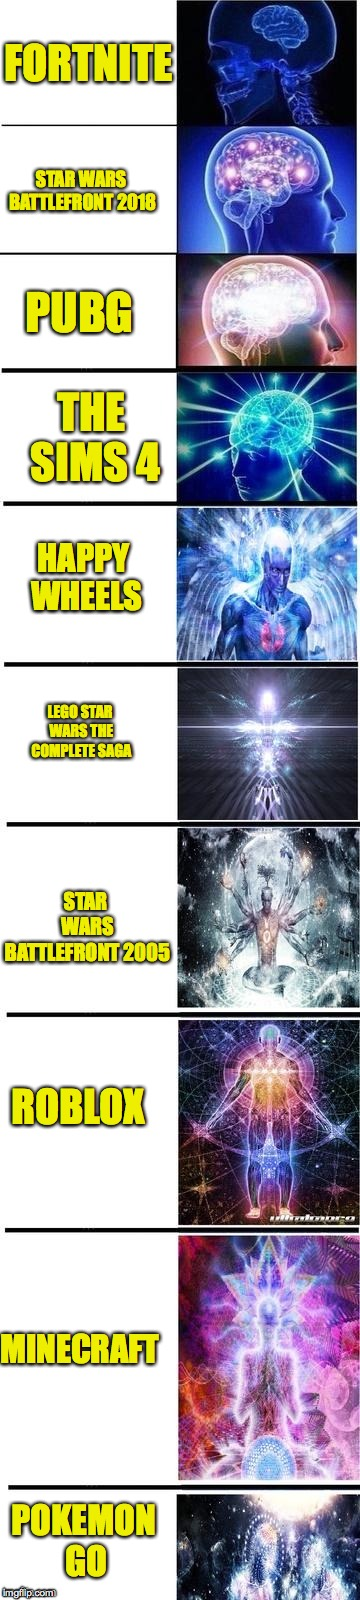 Expanding brain 10 panel | FORTNITE STAR WARS BATTLEFRONT 2018 PUBG THE SIMS 4 HAPPY WHEELS LEGO STAR WARS THE COMPLETE SAGA STAR WARS BATTLEFRONT 2005 ROBLOX MINECRAF | image tagged in expanding brain 10 panel | made w/ Imgflip meme maker